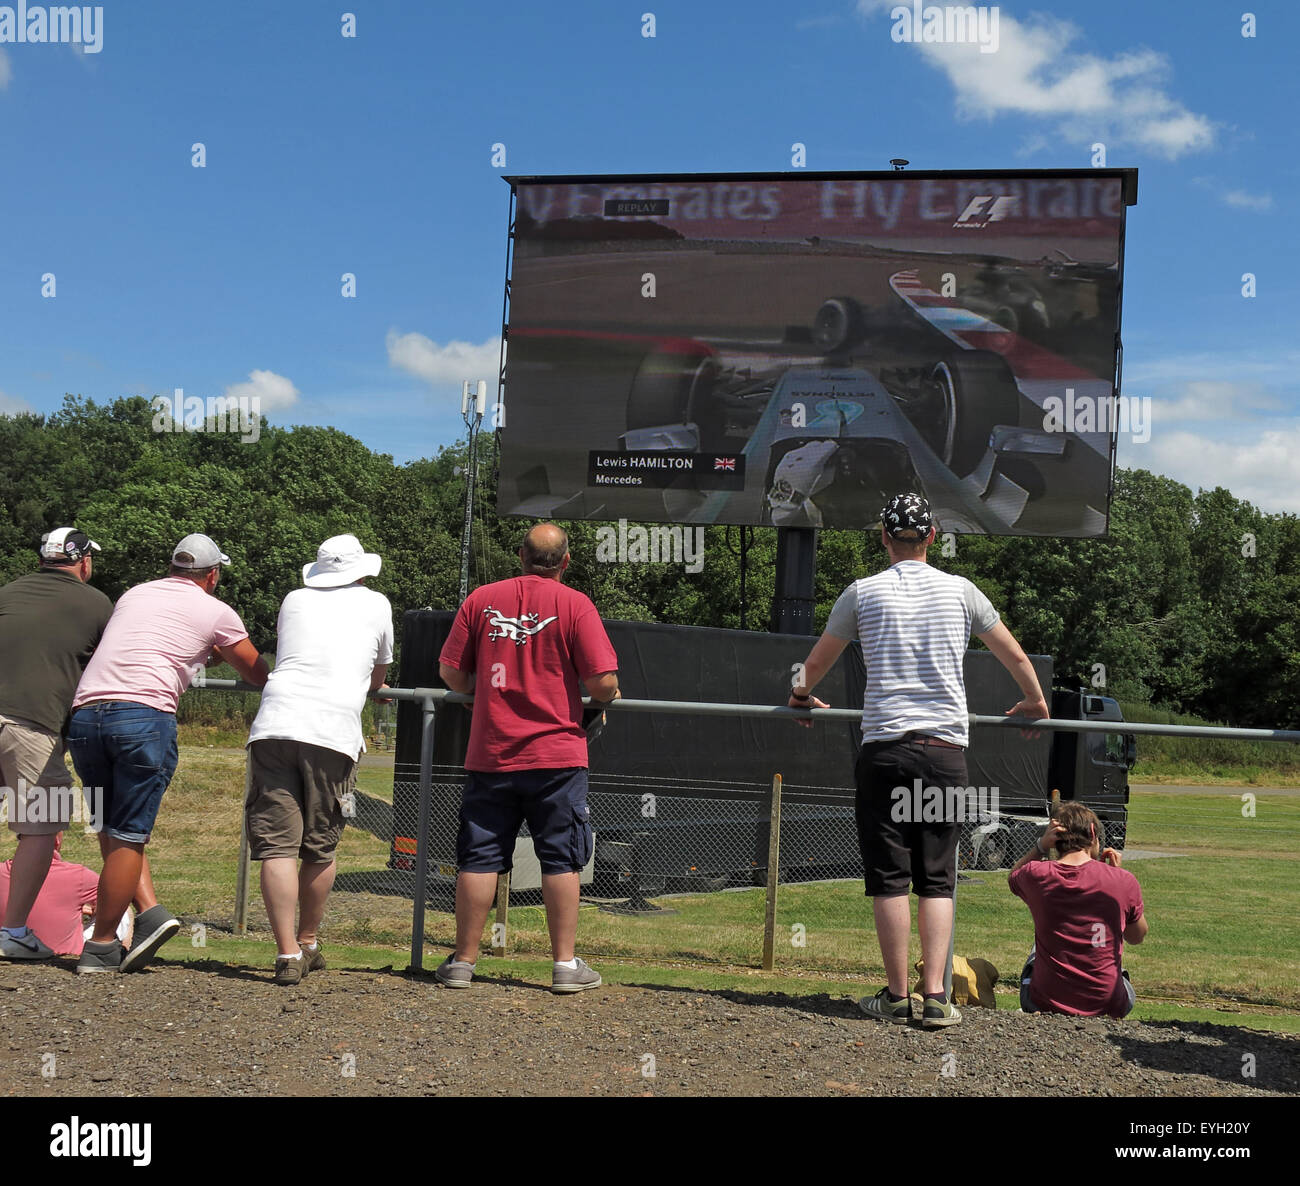 Silverstone F1 British Grand Prix GP England,fans watching Lewis Hamilton qualifying on a large screen - Stock Image